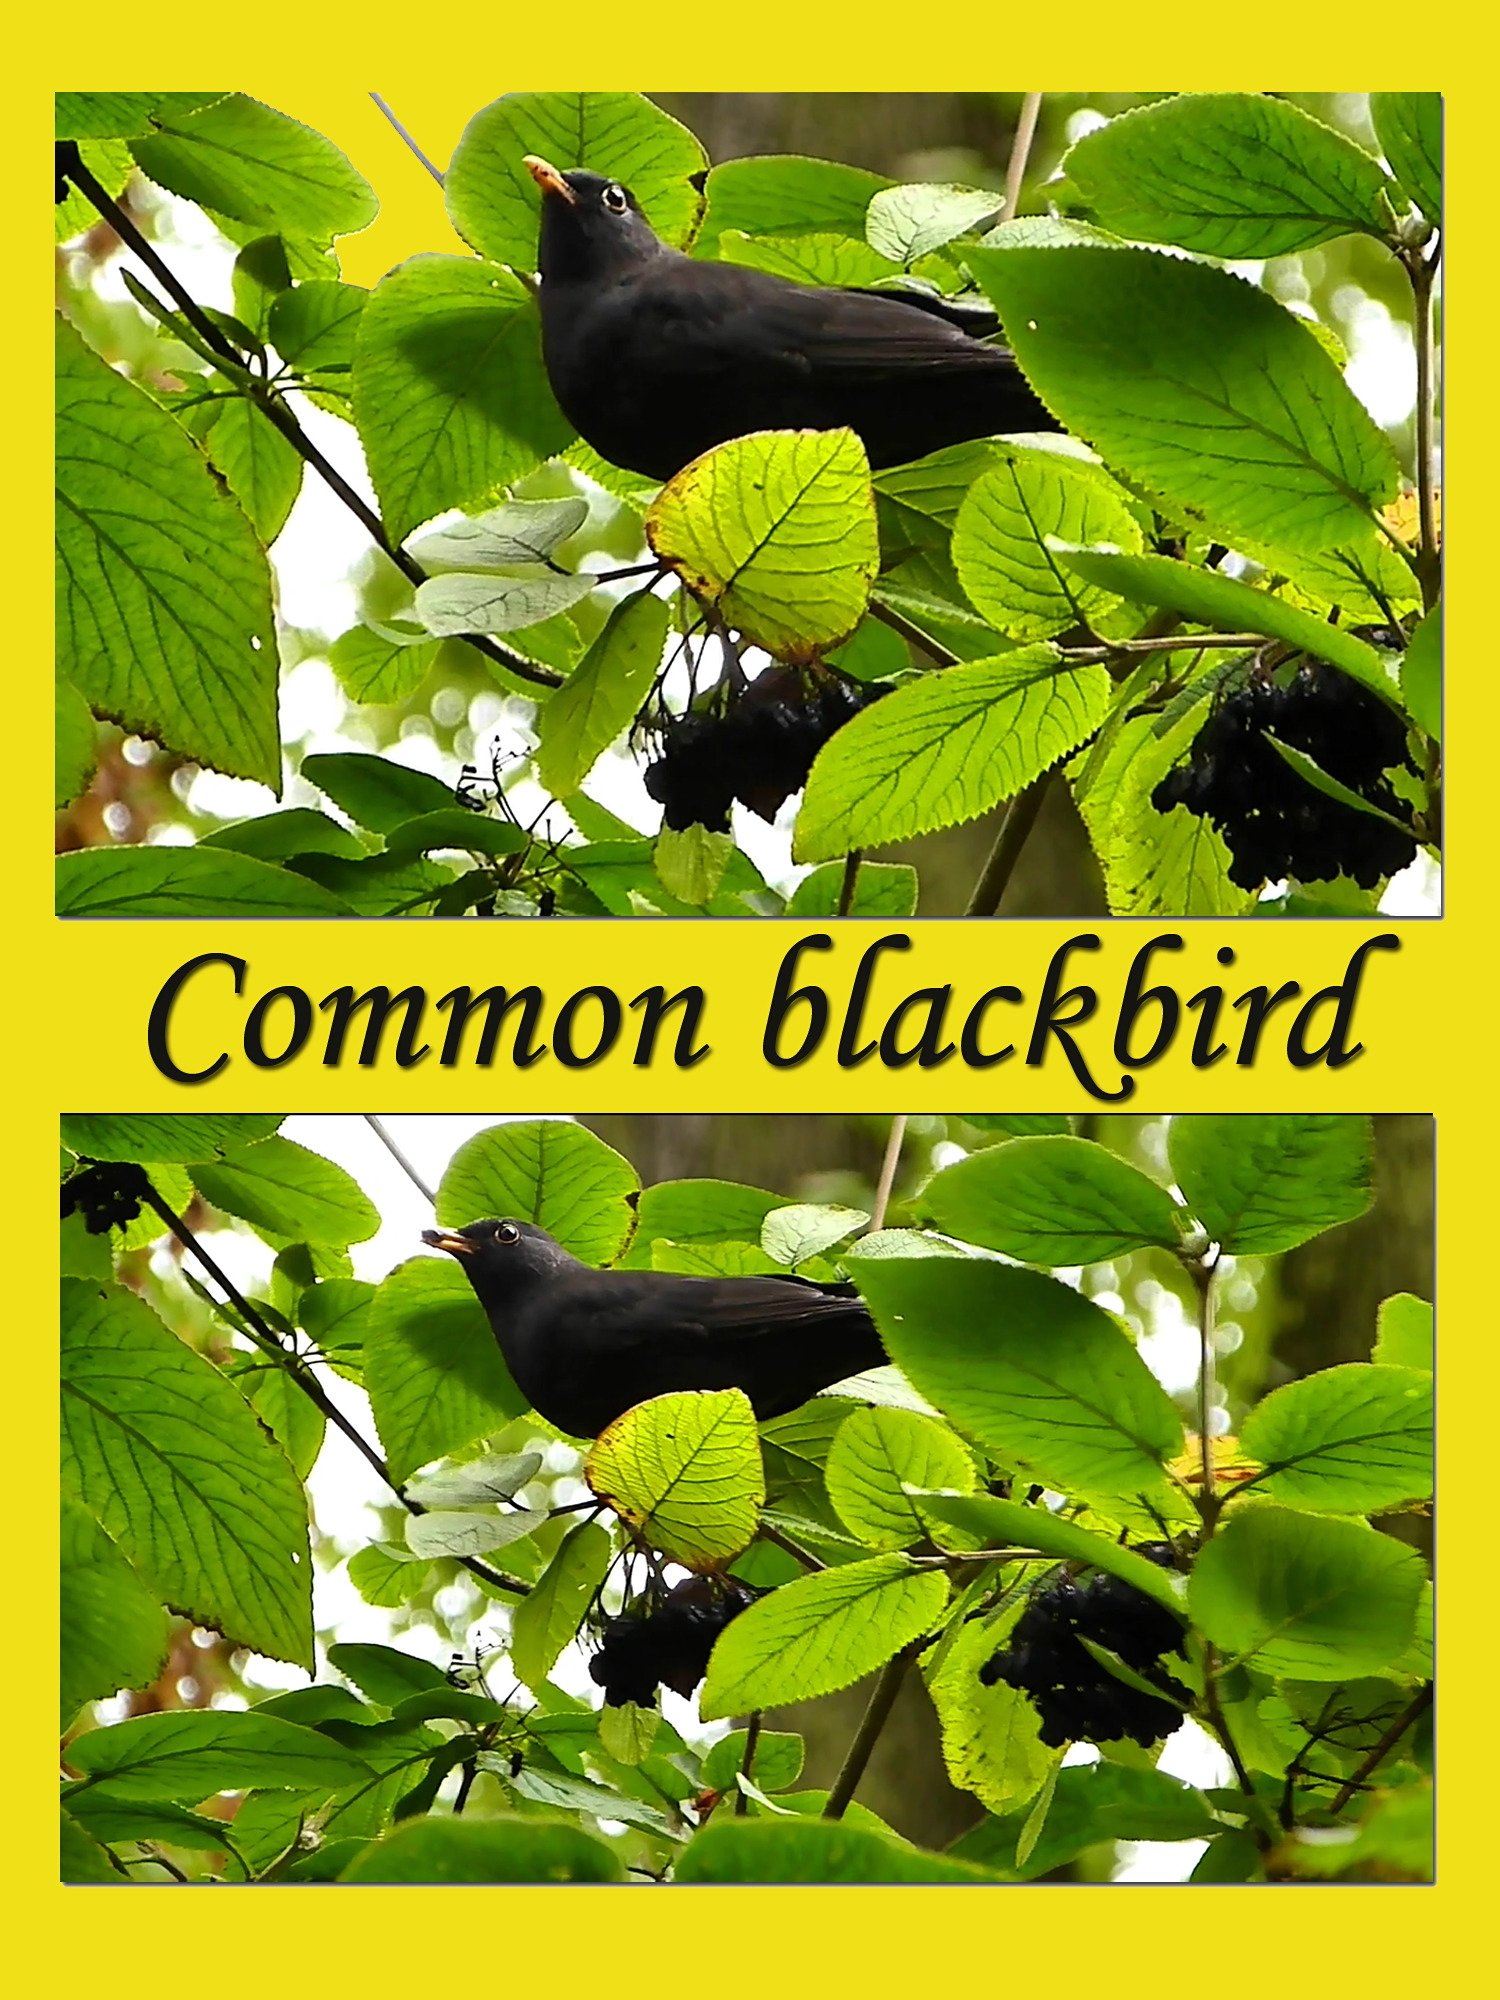 Clip: Common blackbird